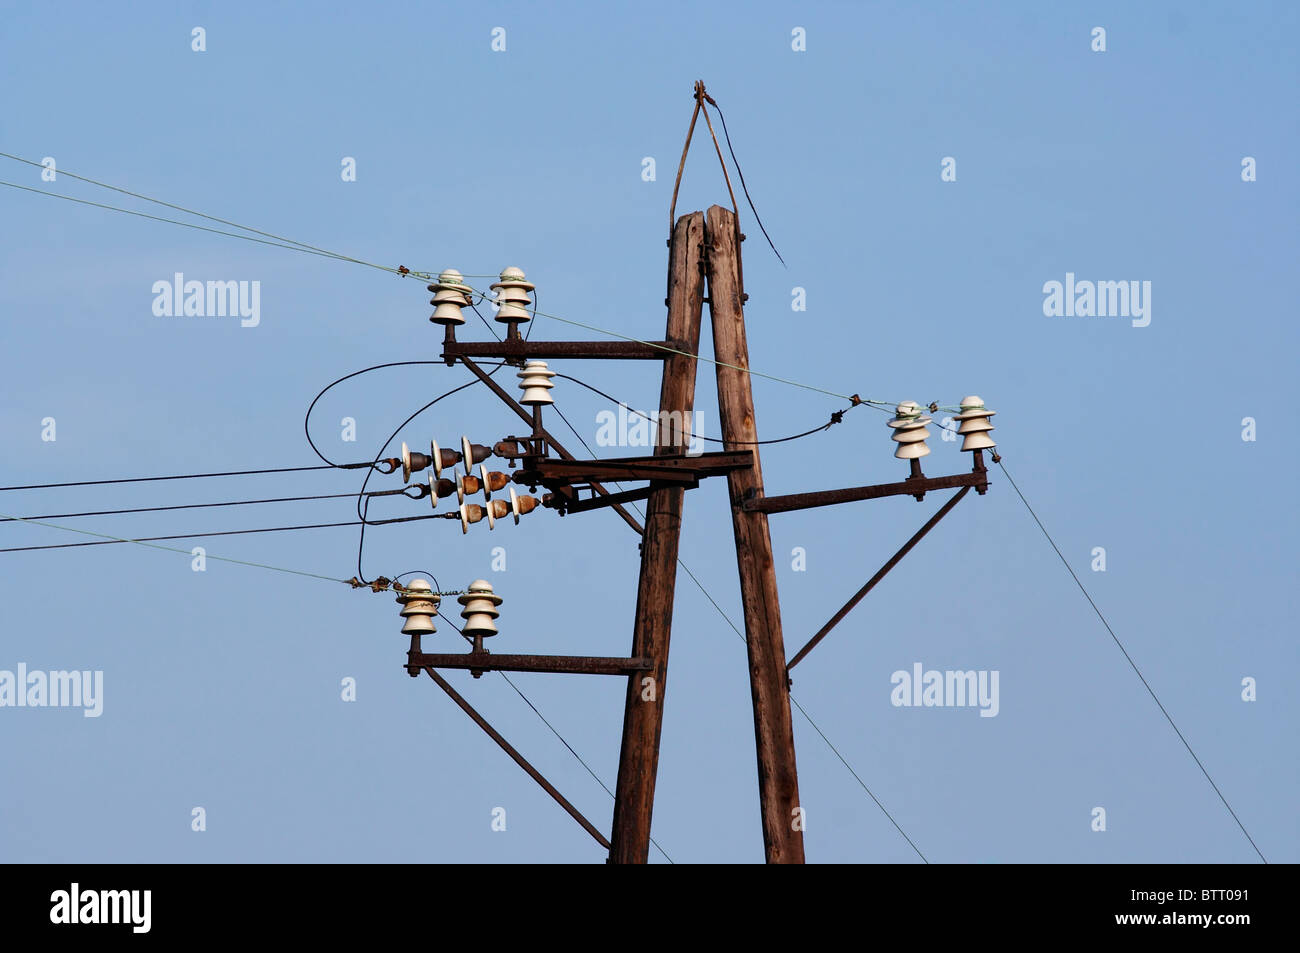 old power-transmission pole - electric power line Stock